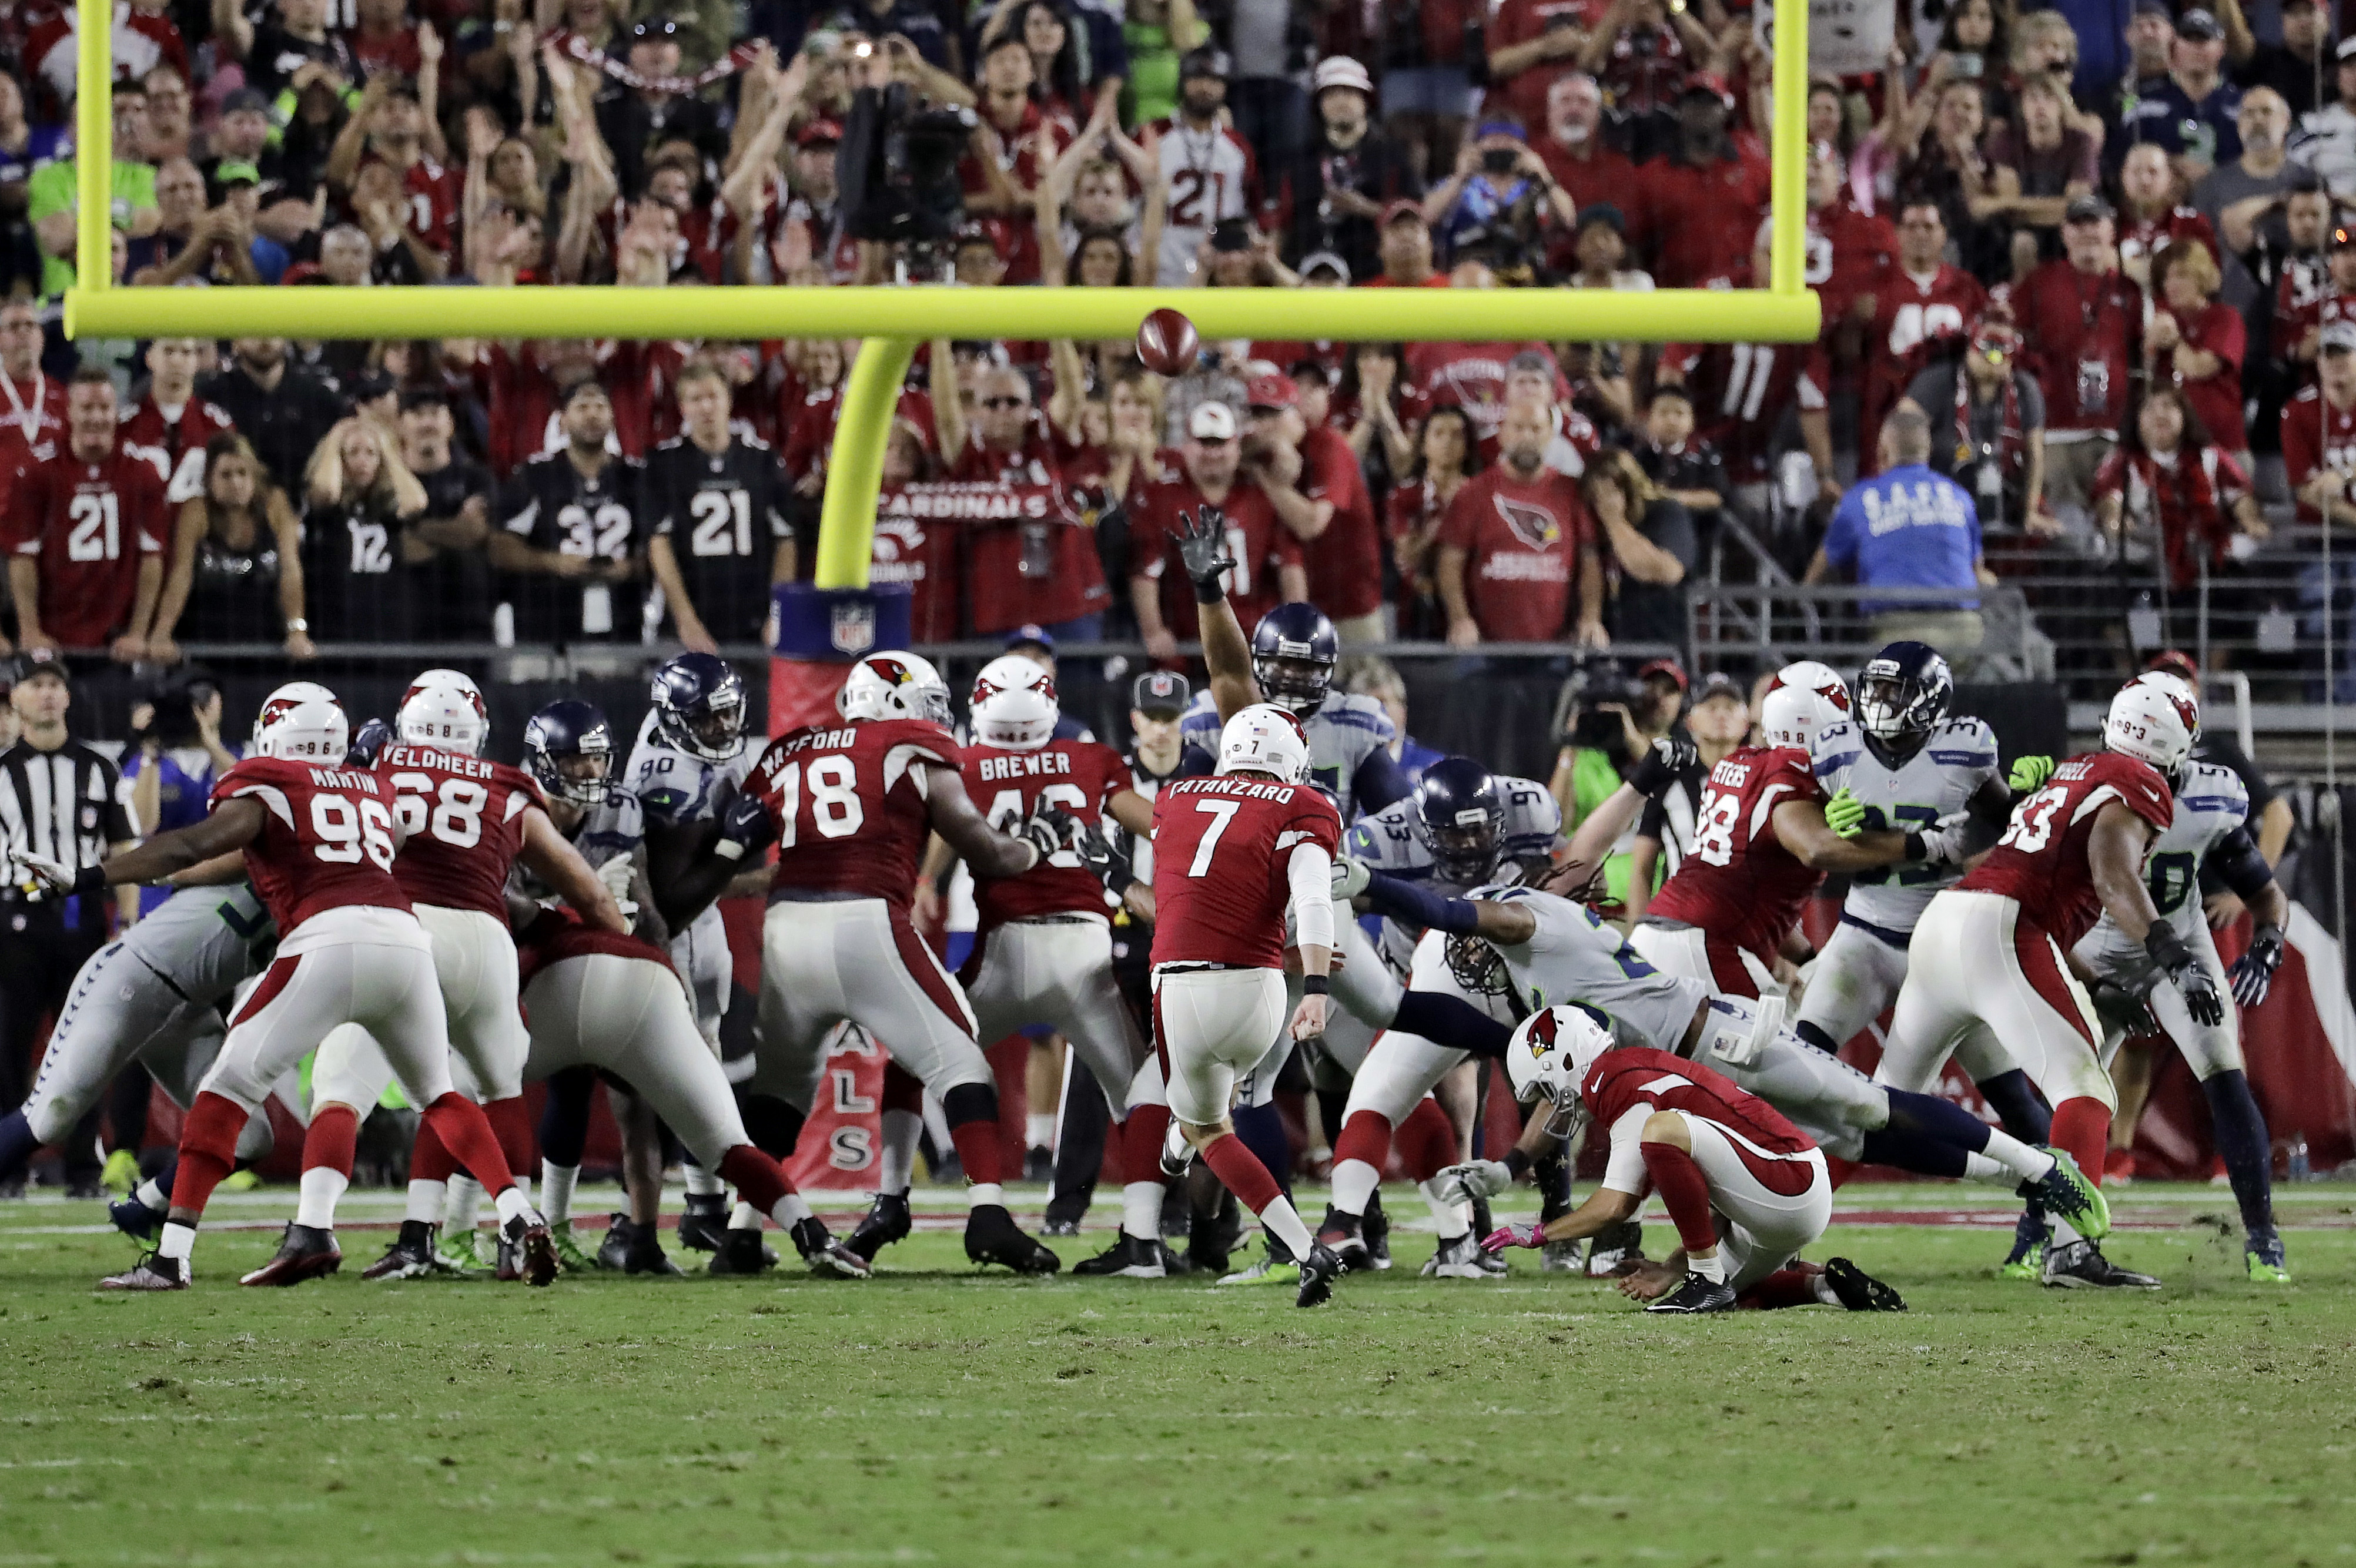 Arizona Cardinals kicker Chandler Catanzaro (7) misses a game-winning field goal attempt agasint Seattle Seahawks during overtime of an NFL football game, Sunday, Oct. 23, 2016, in Glendale, Ariz. (AP Photo/Rick Scuteri)